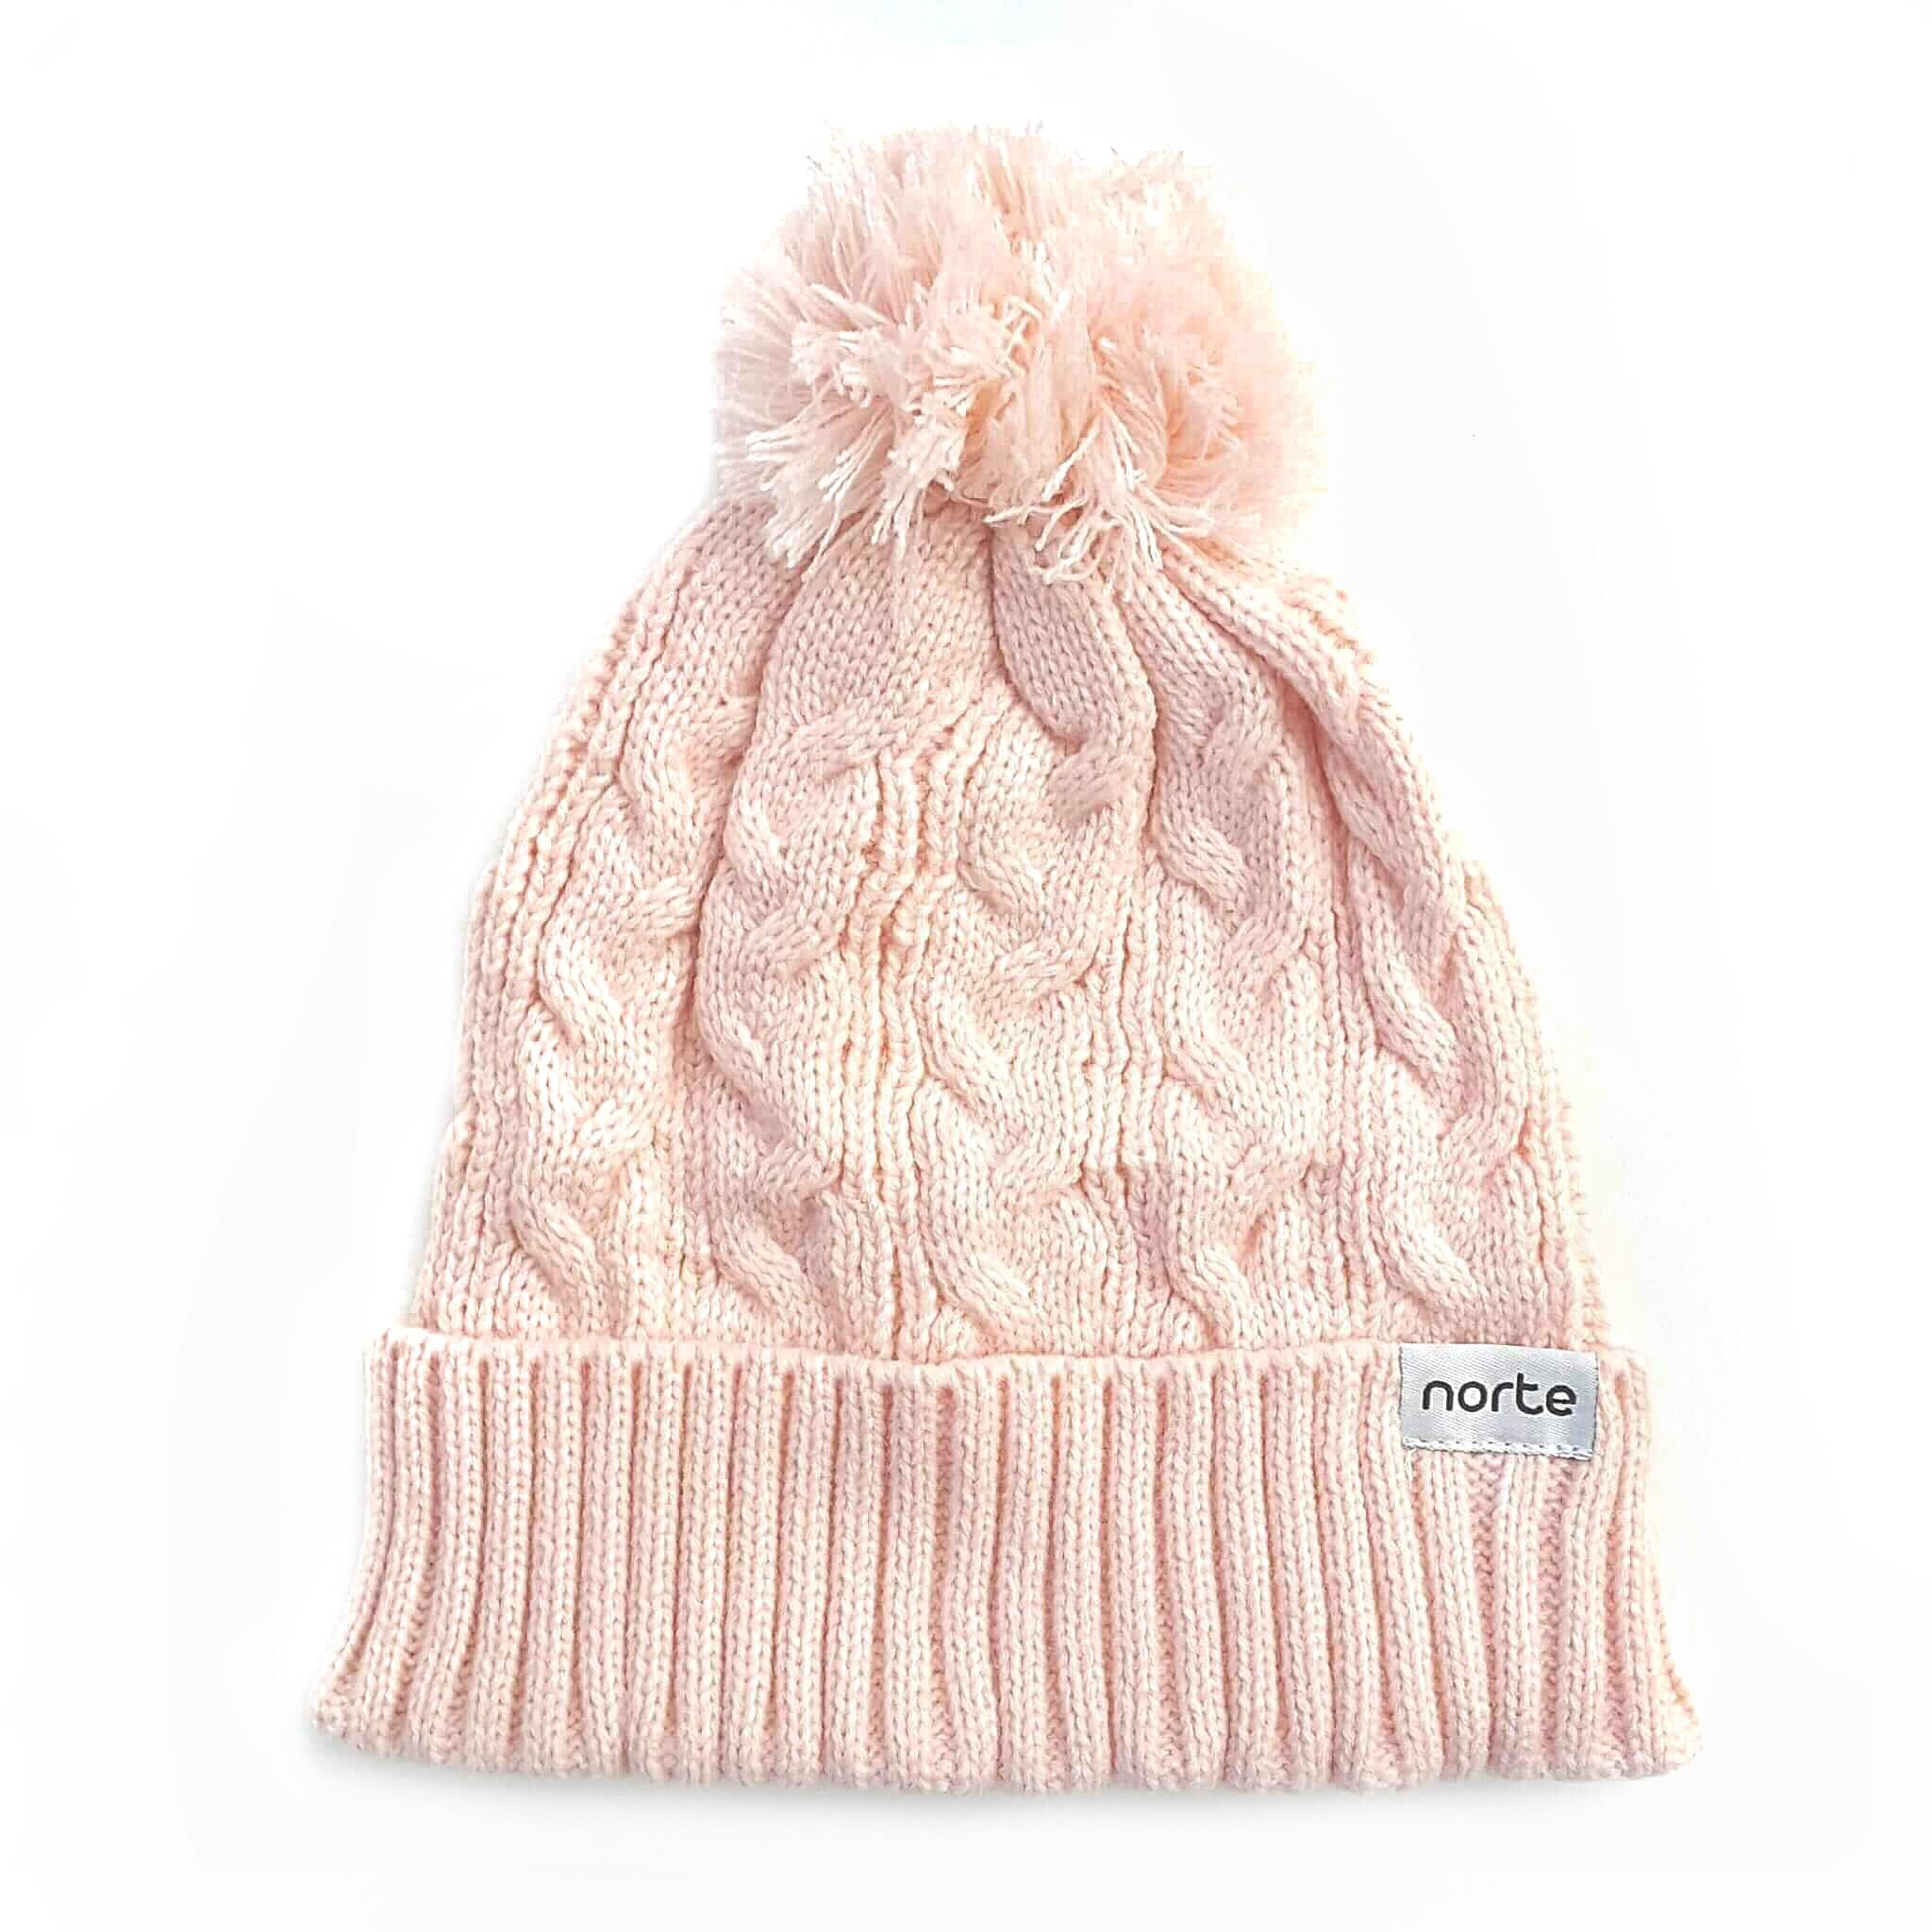 Life s a Peach - Cable Knit Beanie 56f72610bff